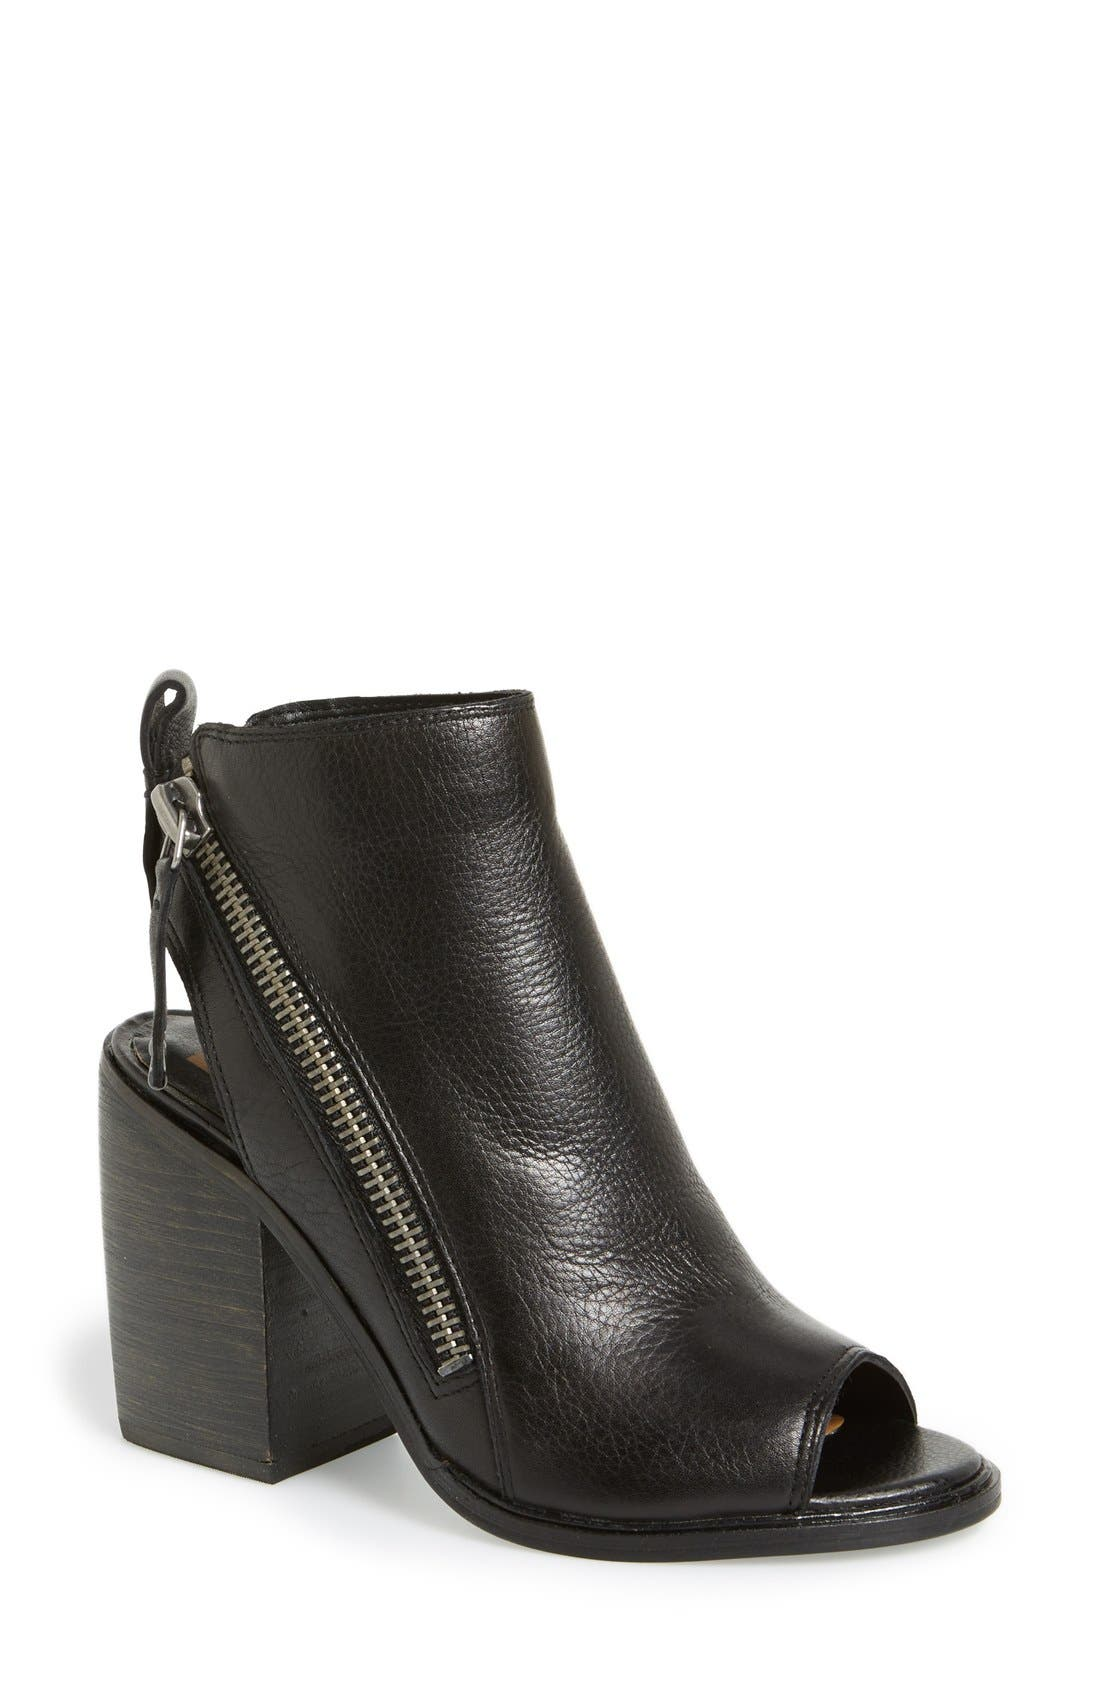 Alternate Image 1 Selected - Dolce Vita 'Port' Open Toe Bootie (Women)